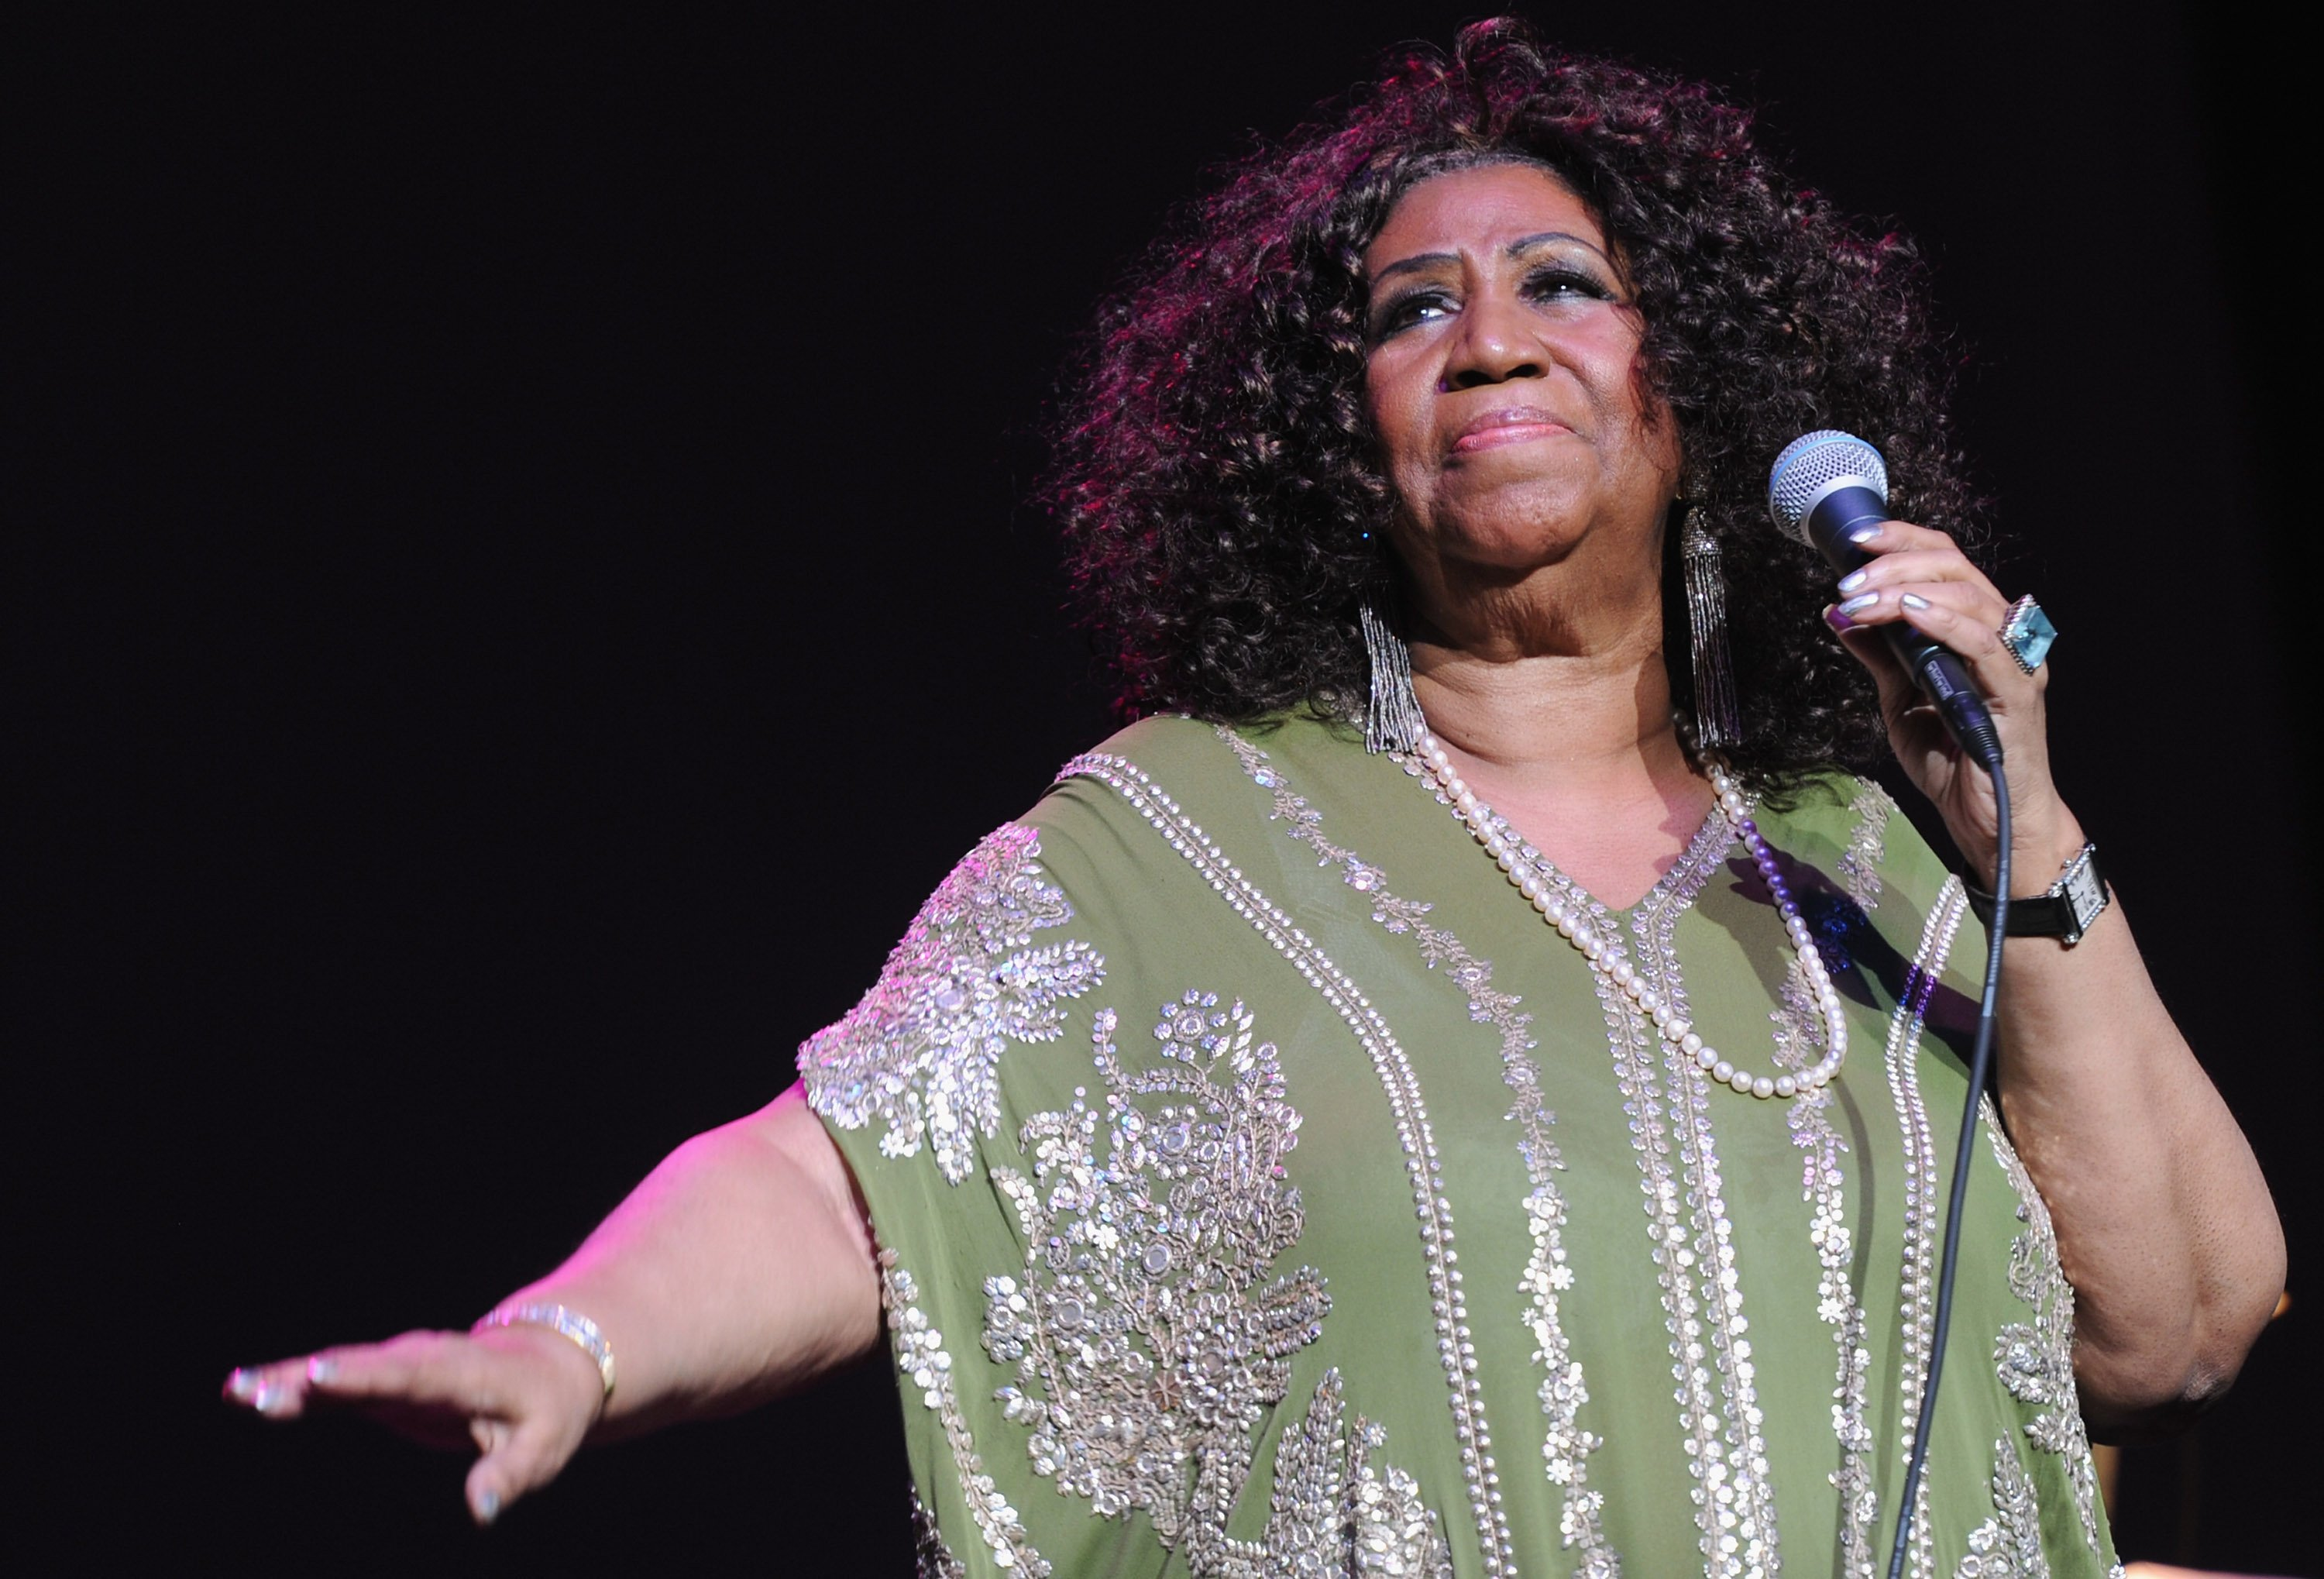 Aretha Franklin performing at the Fox Theatre in Atlanta, Georgia on March 5, 2012.   Source: Getty Images